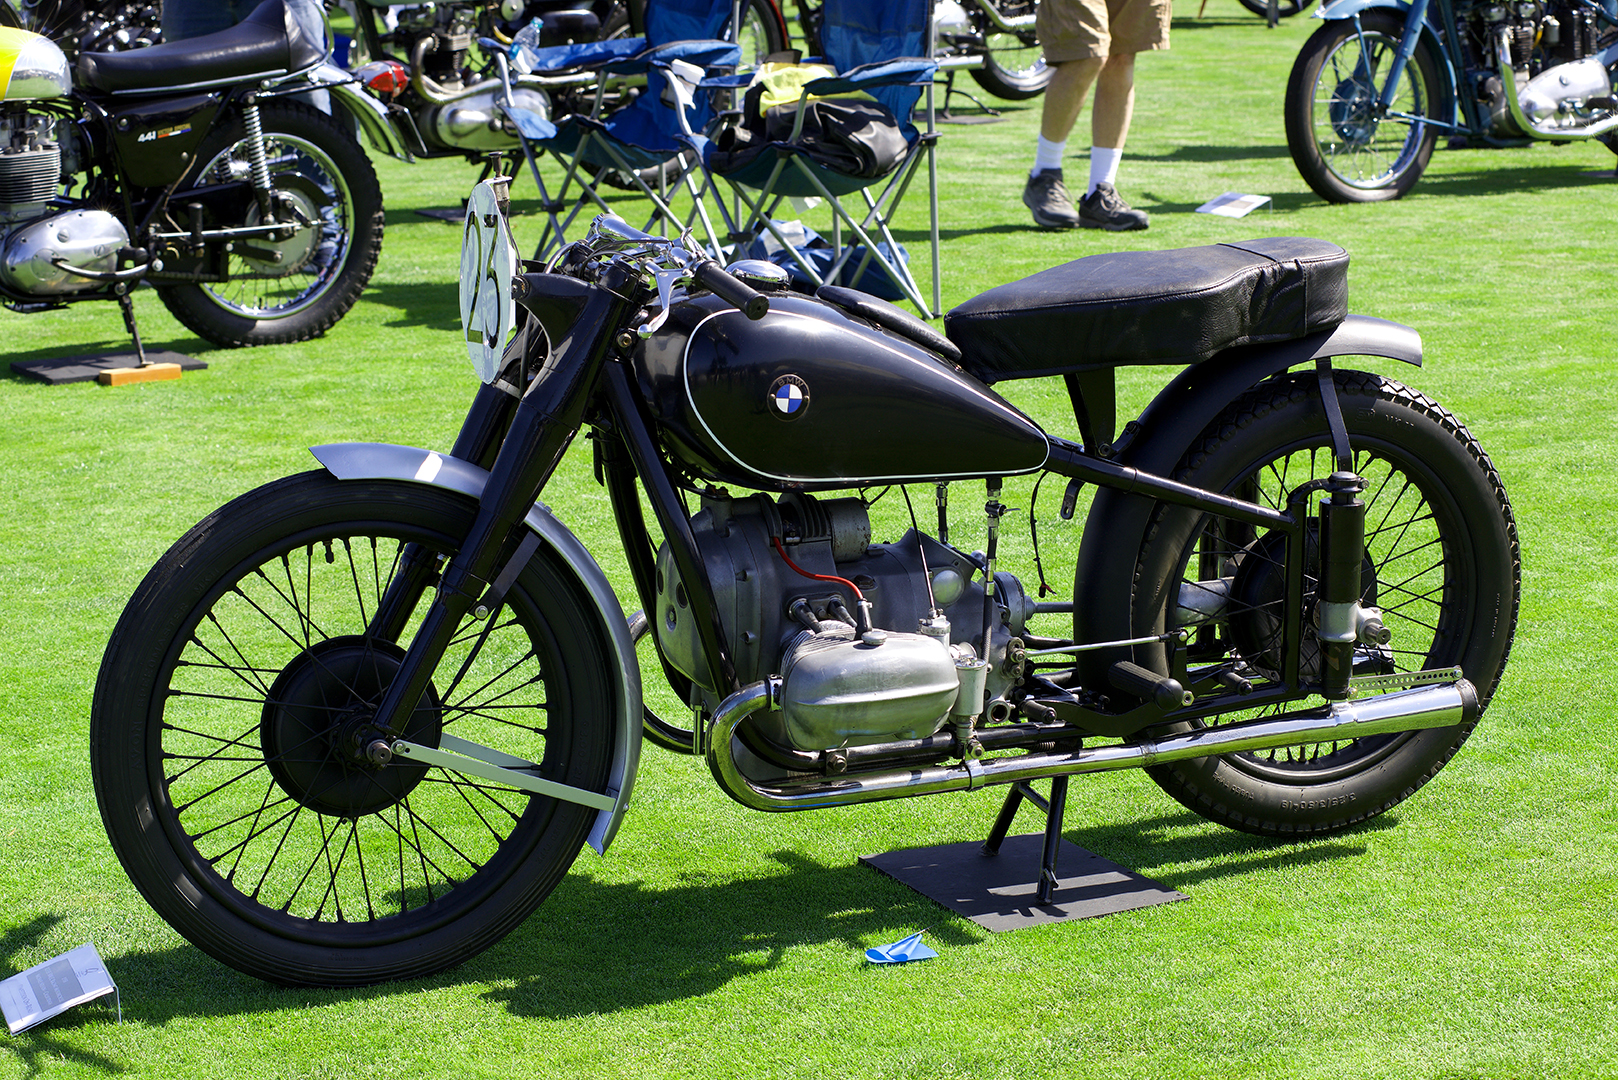 One of the most historically significant motorcycles at the Quail was Michael Nelson's 1938 BMW R51SS Rennsport Grand Prix racer ridden by Brit Tim Reid at the Isle of Mann TT in 1939.